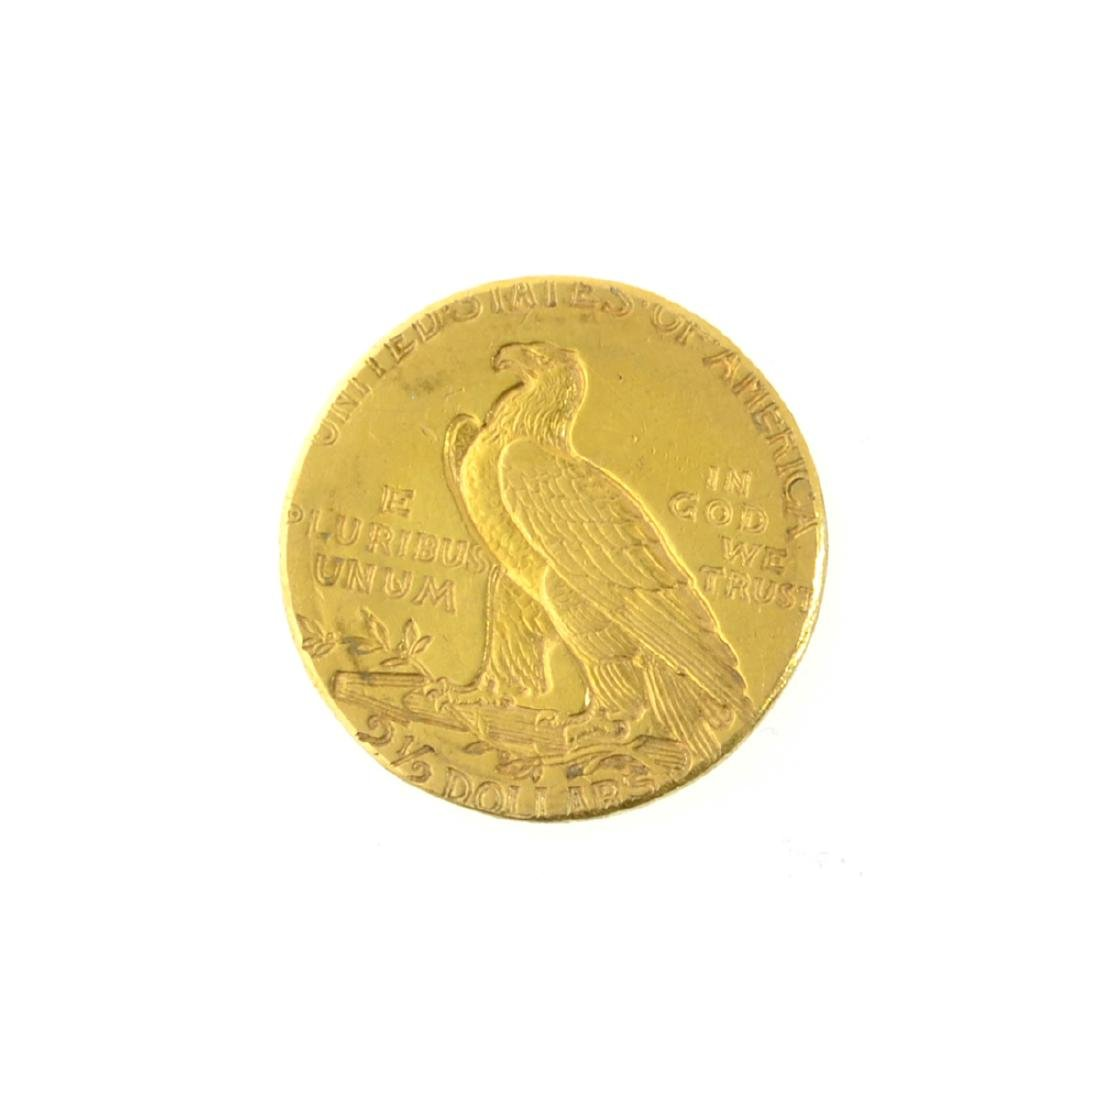 *1912 $2.50 U.S. Indian Head Gold Coin (PS-JWJ) - 2